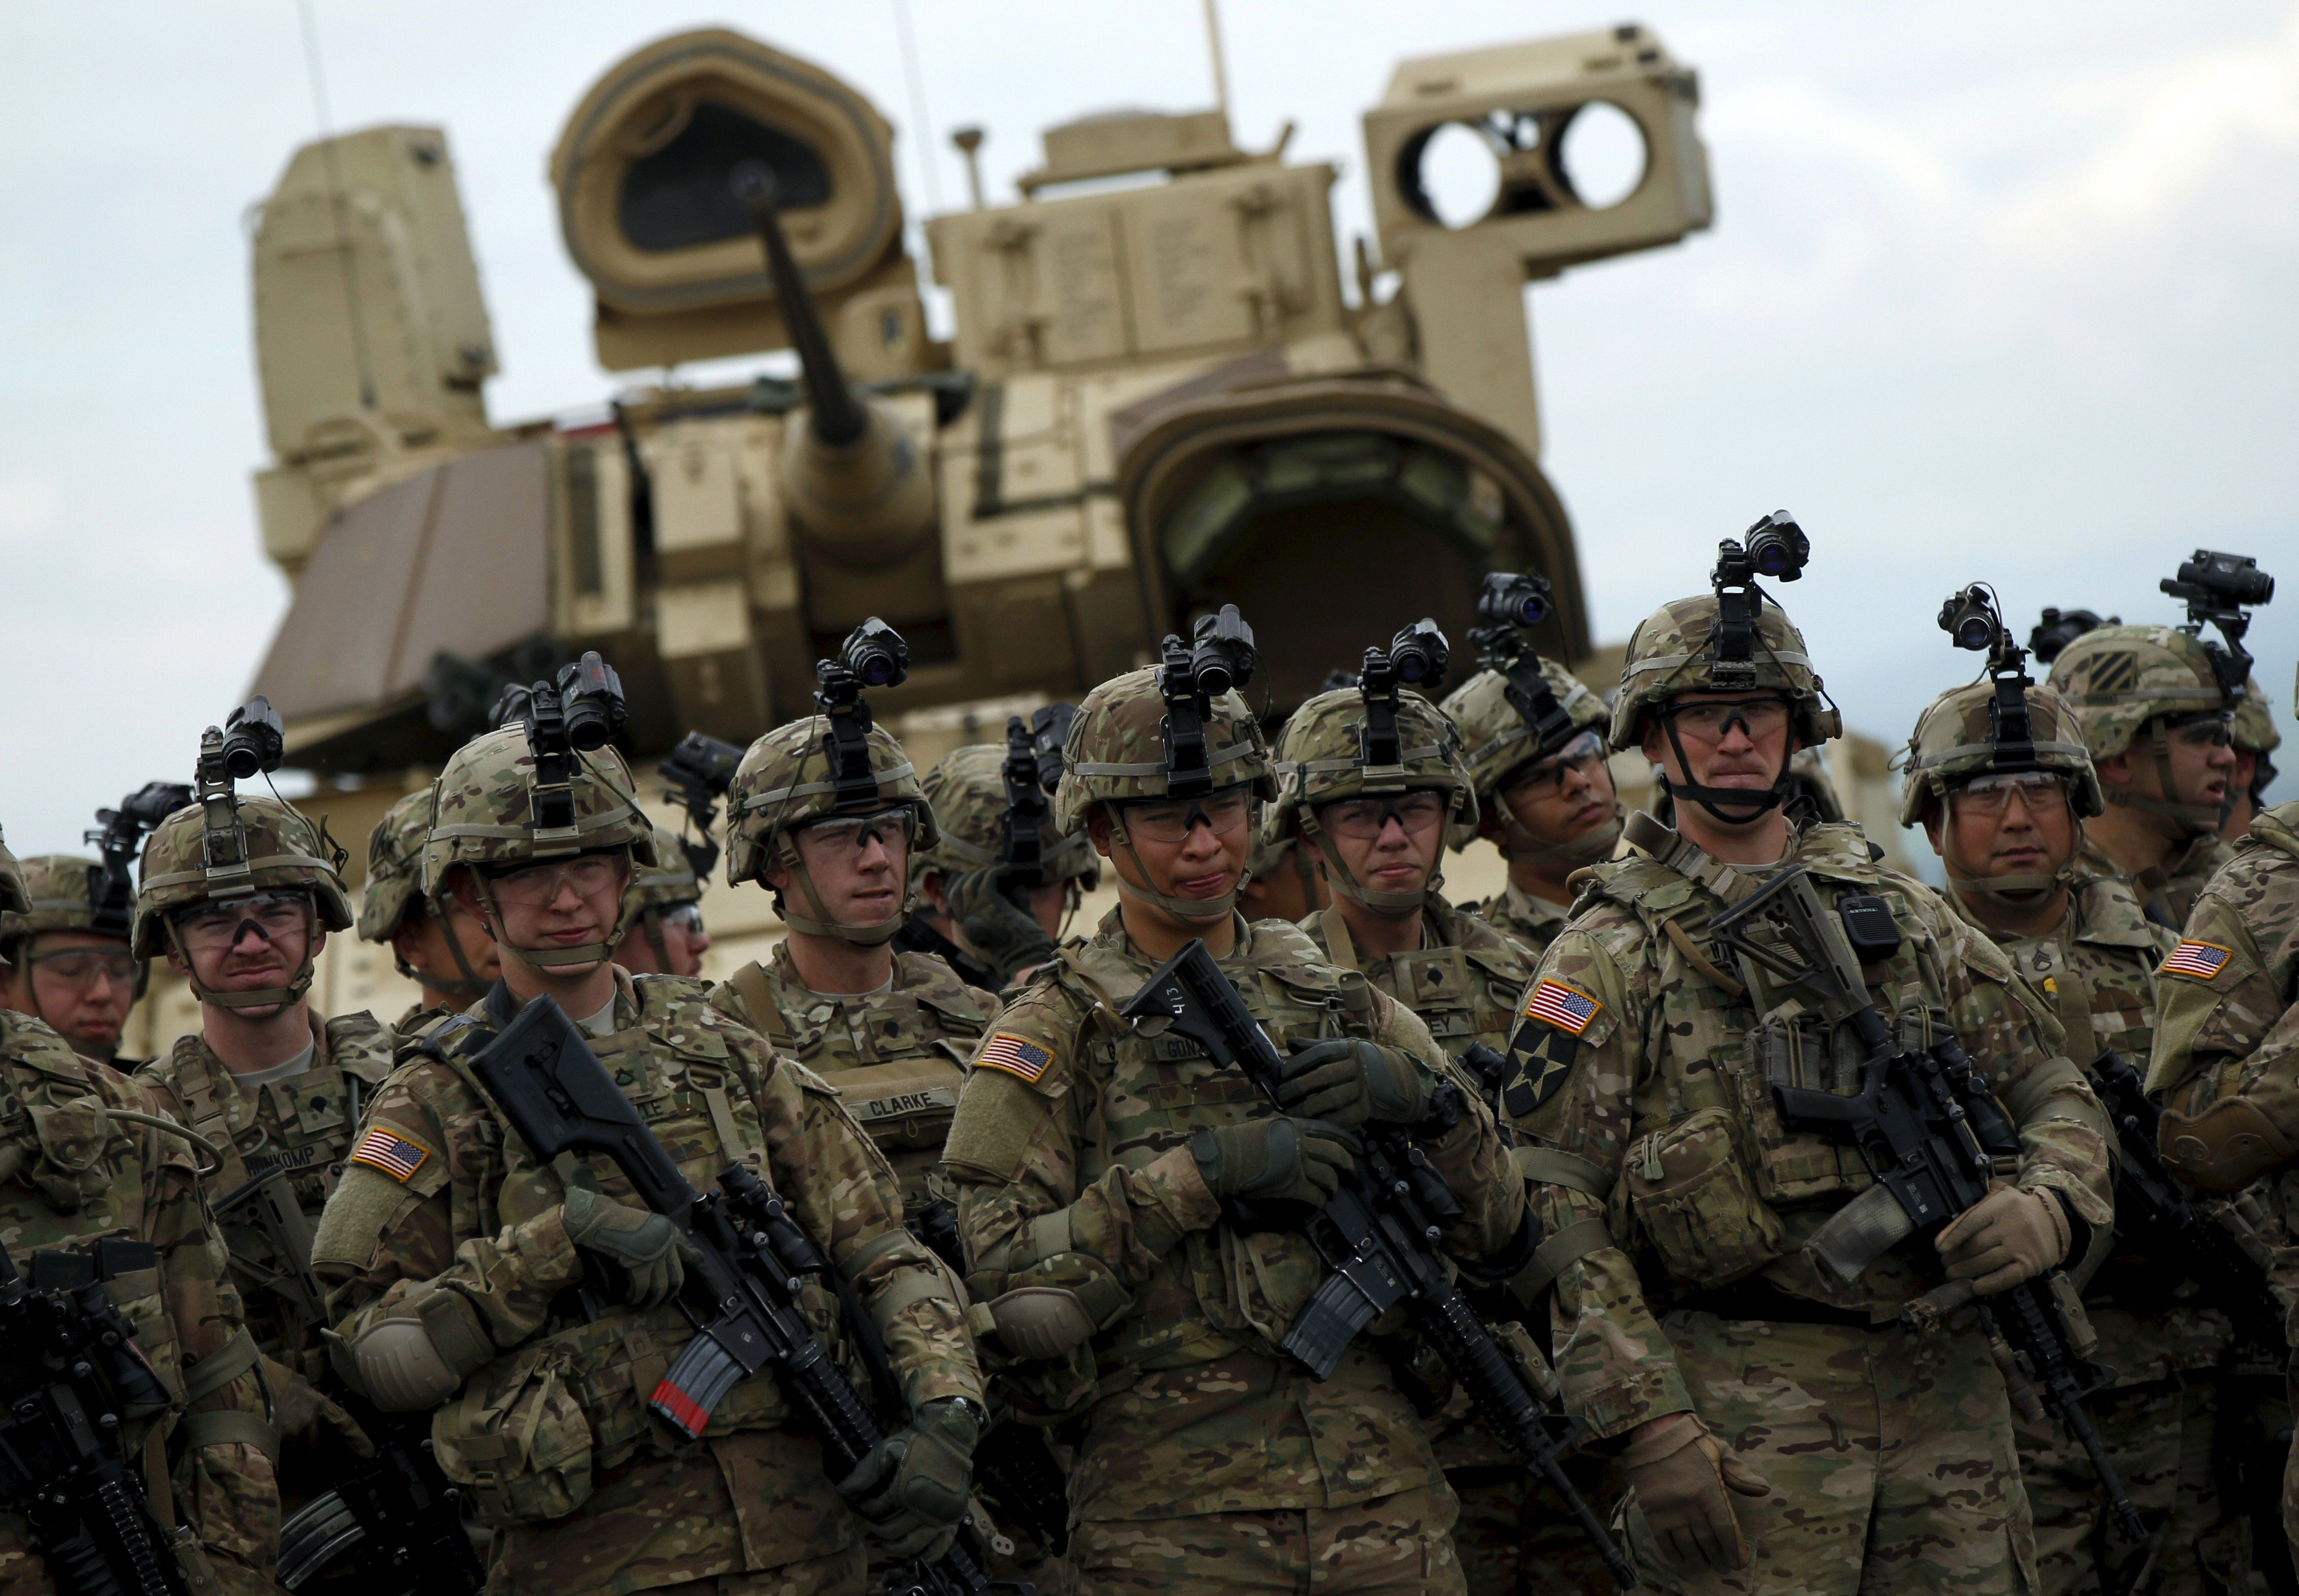 United States Army Wallpapers - Top Free United States ...